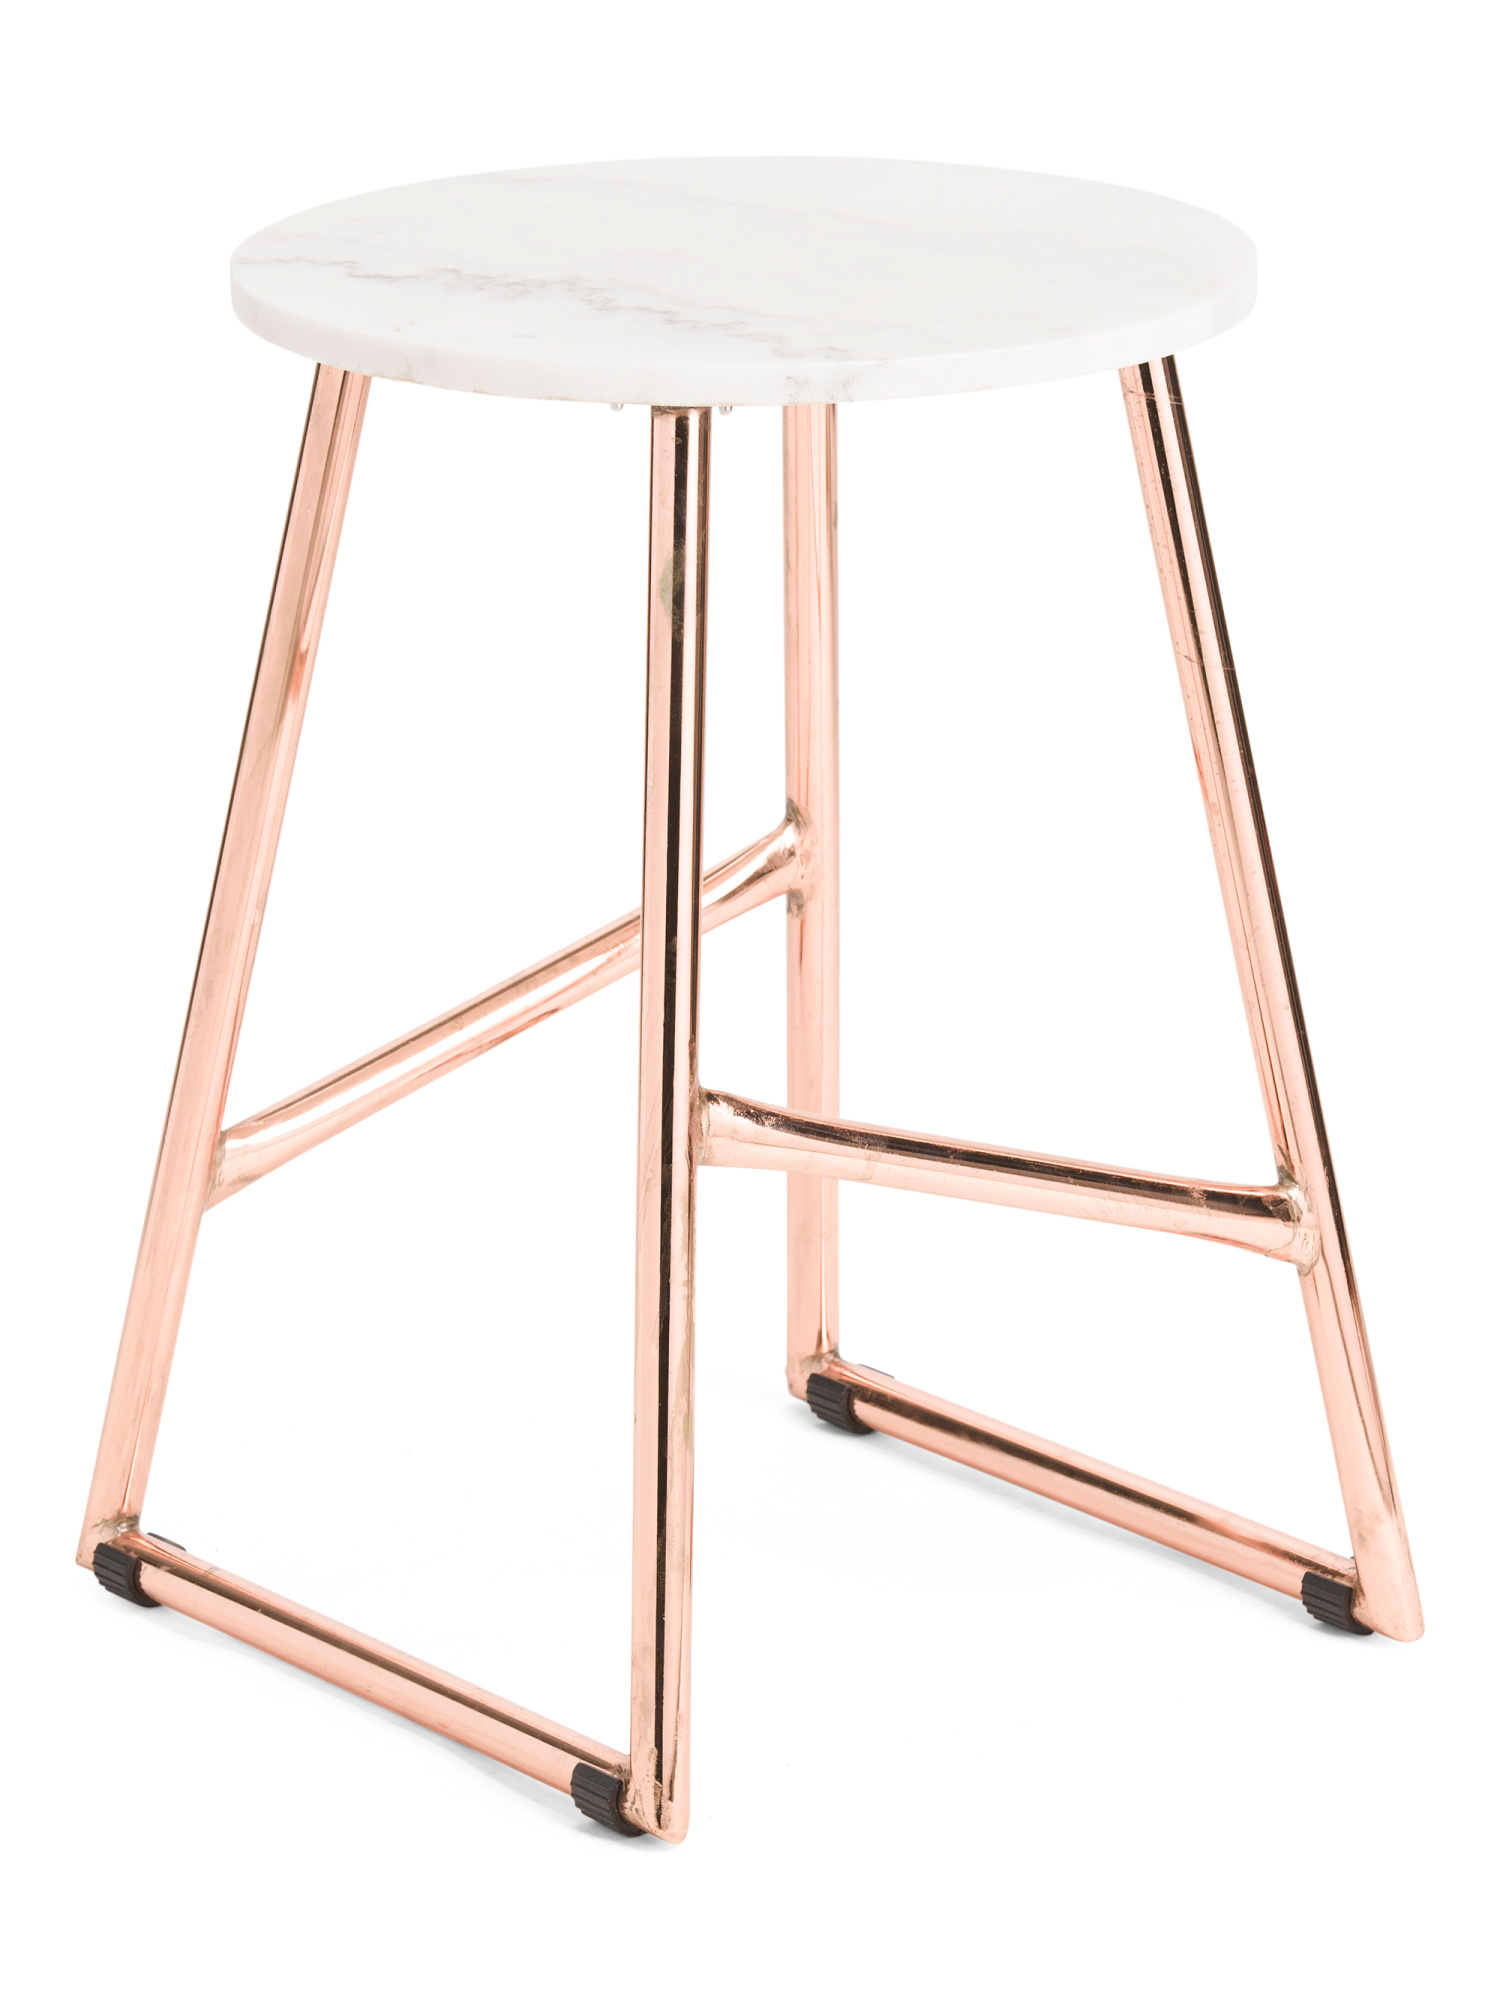 marble top accent table furniture maxx tjx rose gold high resolution heavy duty umbrella stand white round end patio and chairs clearance small wooden bedside chair set brass nest